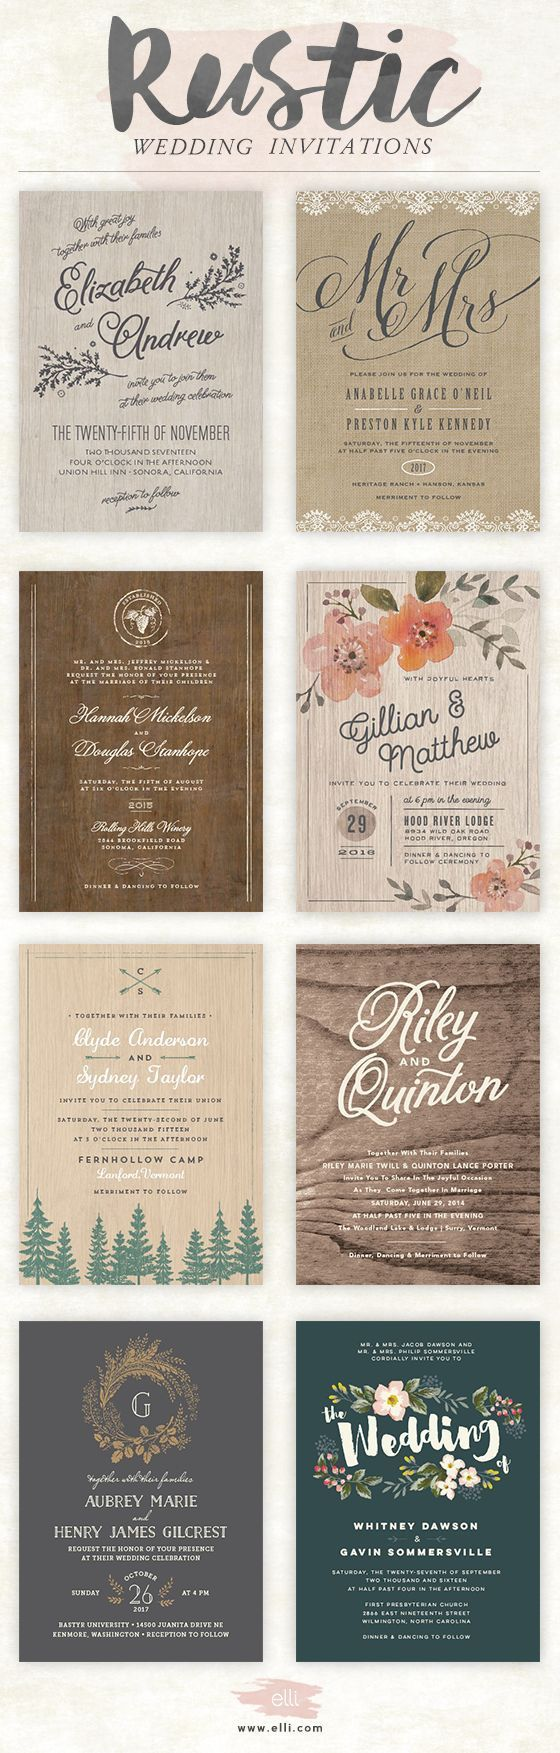 how to address couples on wedding invitations%0A Rustic wedding invitations    Bella Collina Weddings